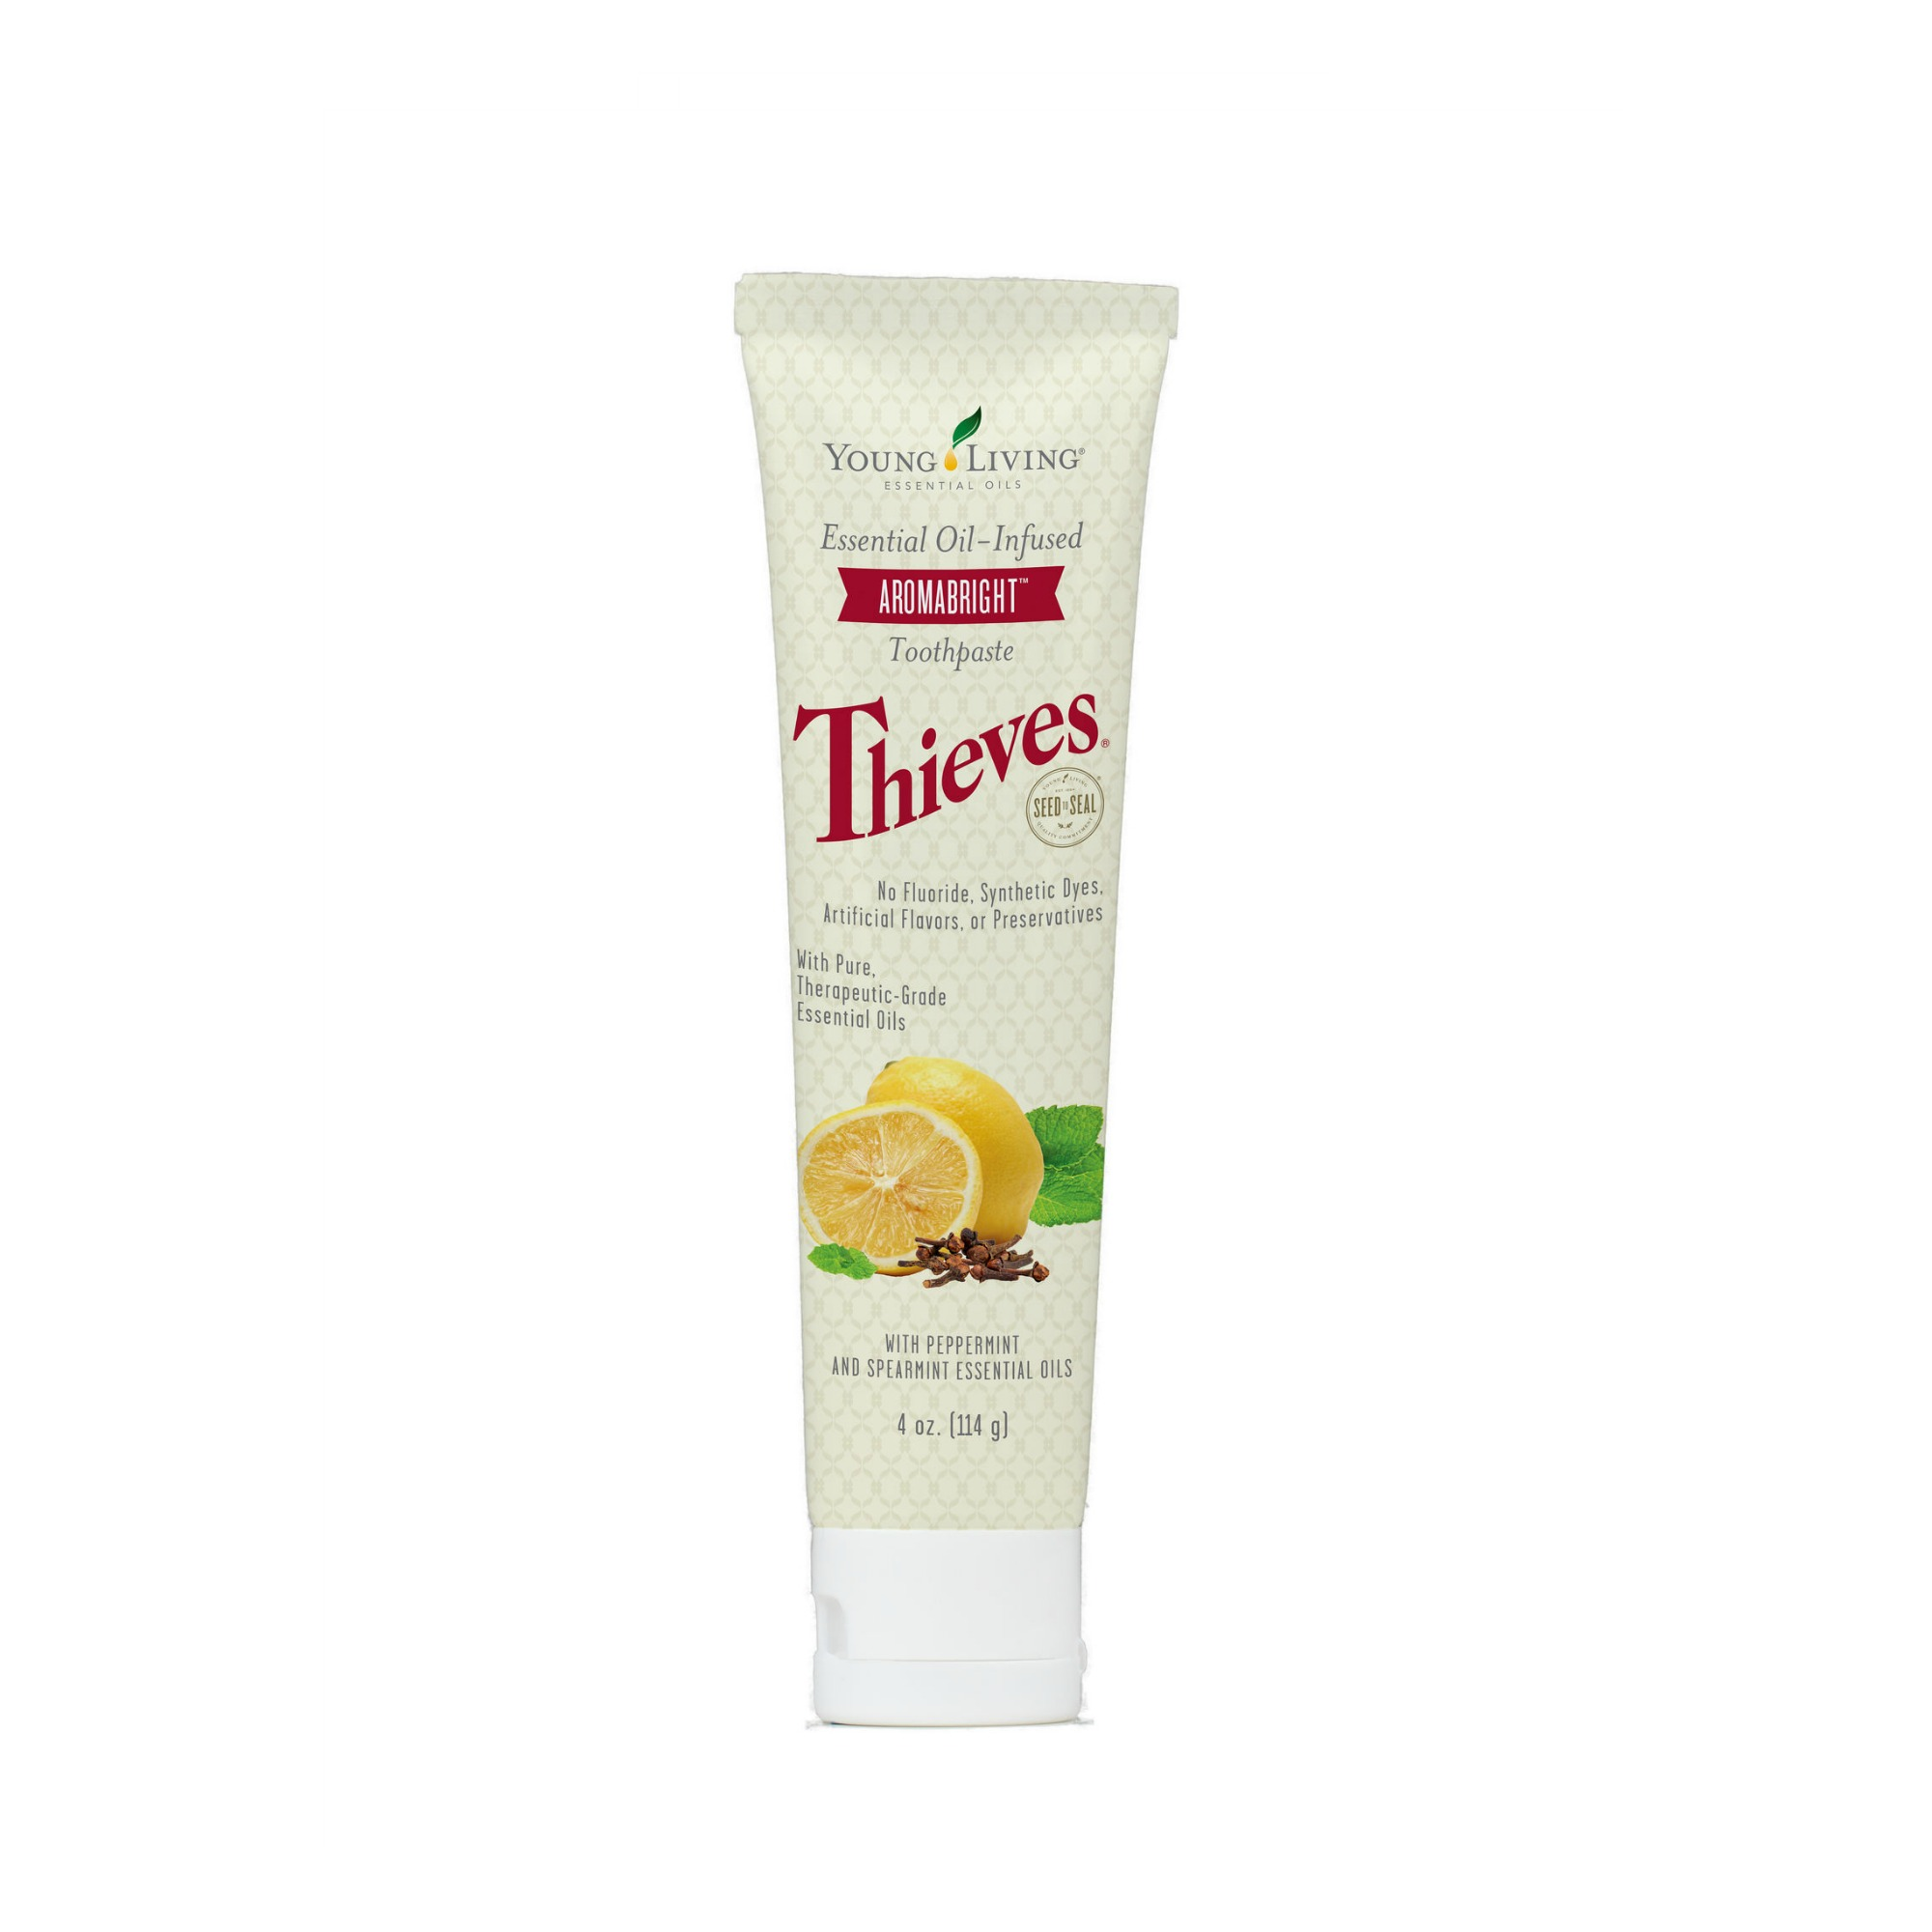 THIEVES AROMABRIGHT TOOTHPASTE    Combining the benefits of our Dentarome Plus and Dentarome Ultra Toothpaste, AromaBright gently brushes away daily buildup and helps combat the effects of unsightly staining. This one has more of a citrusy spearmint taste to it. It's great for cleansing without the toxins, but also popularly known for its whitening properties!   Click here   to learn more about this product.